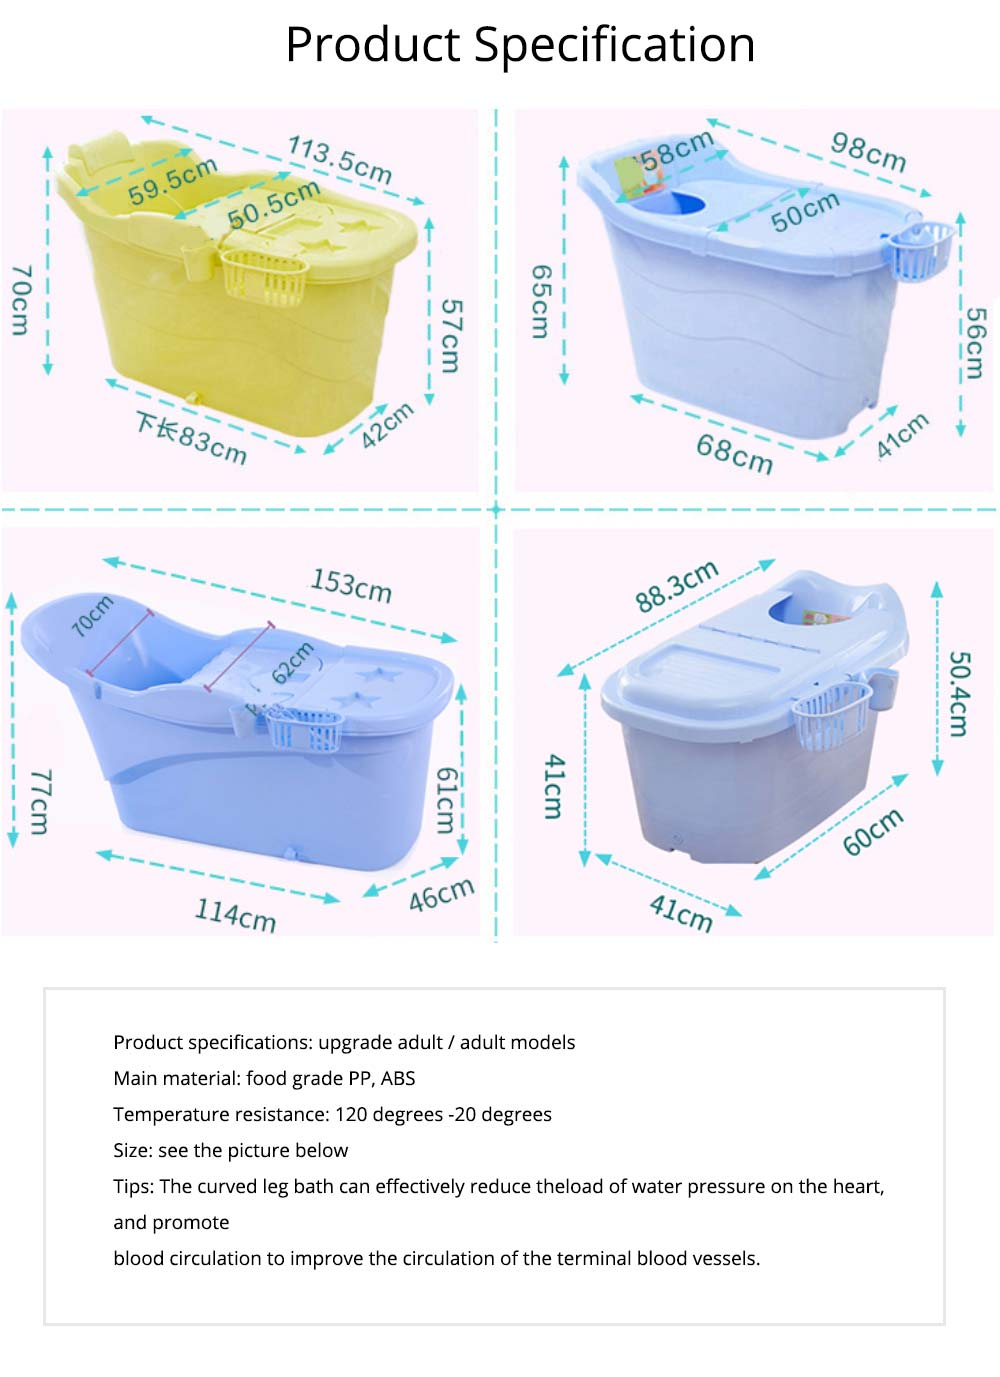 Thick Plastic Adult Bath Barrel, Children's Home Bath Barrel, Adult Body Oversized Bath Tub 6